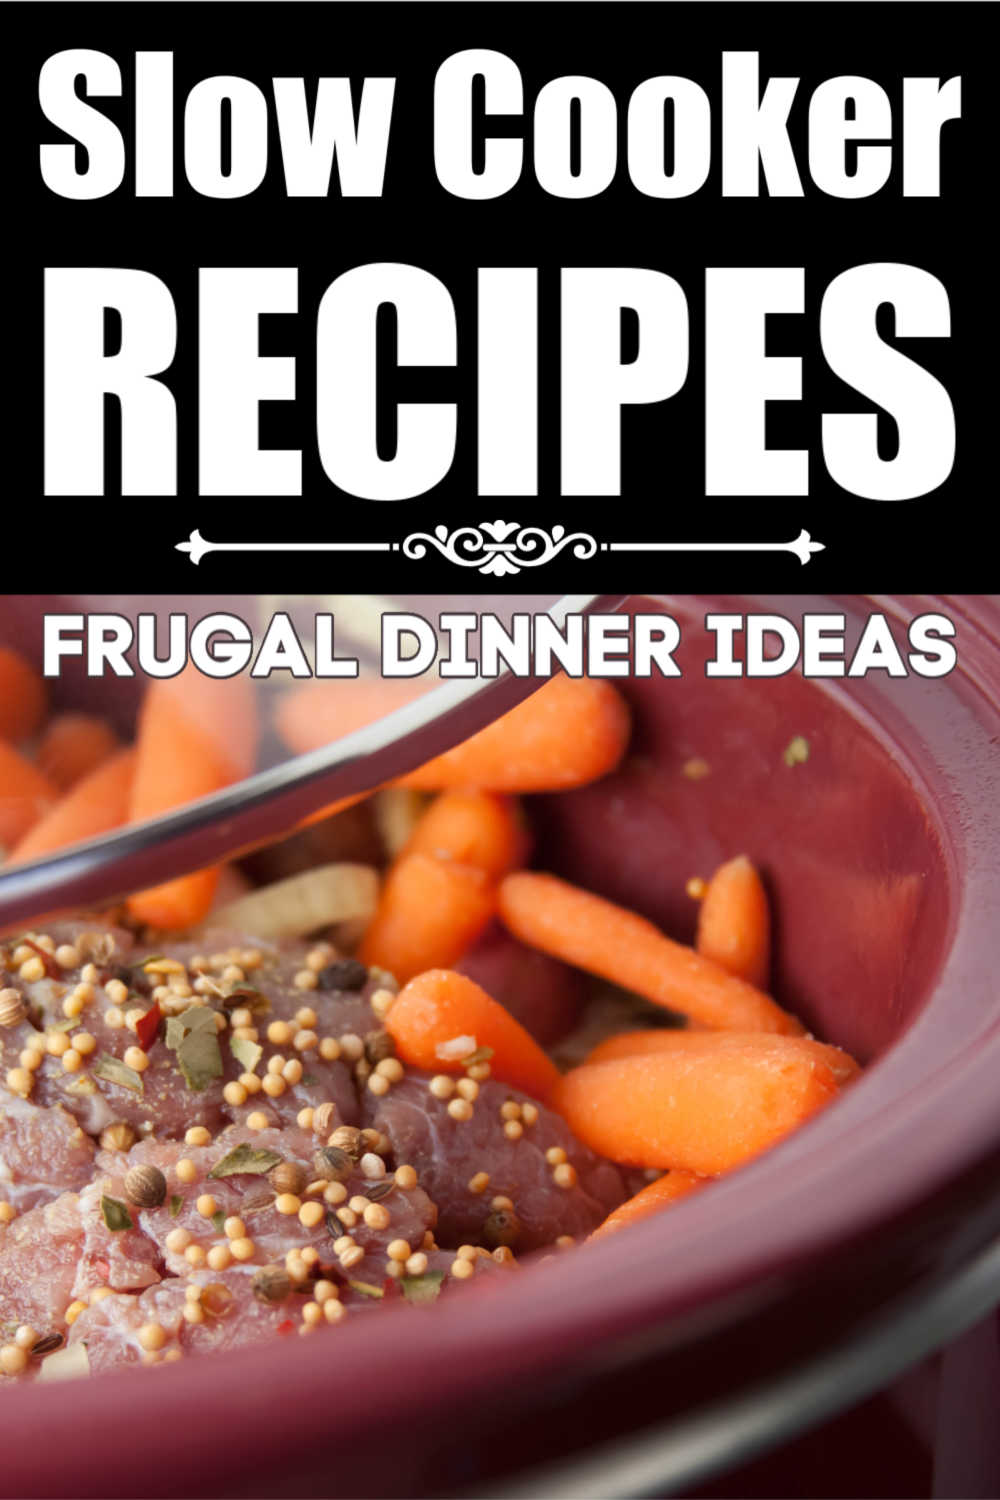 Easy Frugal Crockpot Recipes to Make For Dinner Tonight